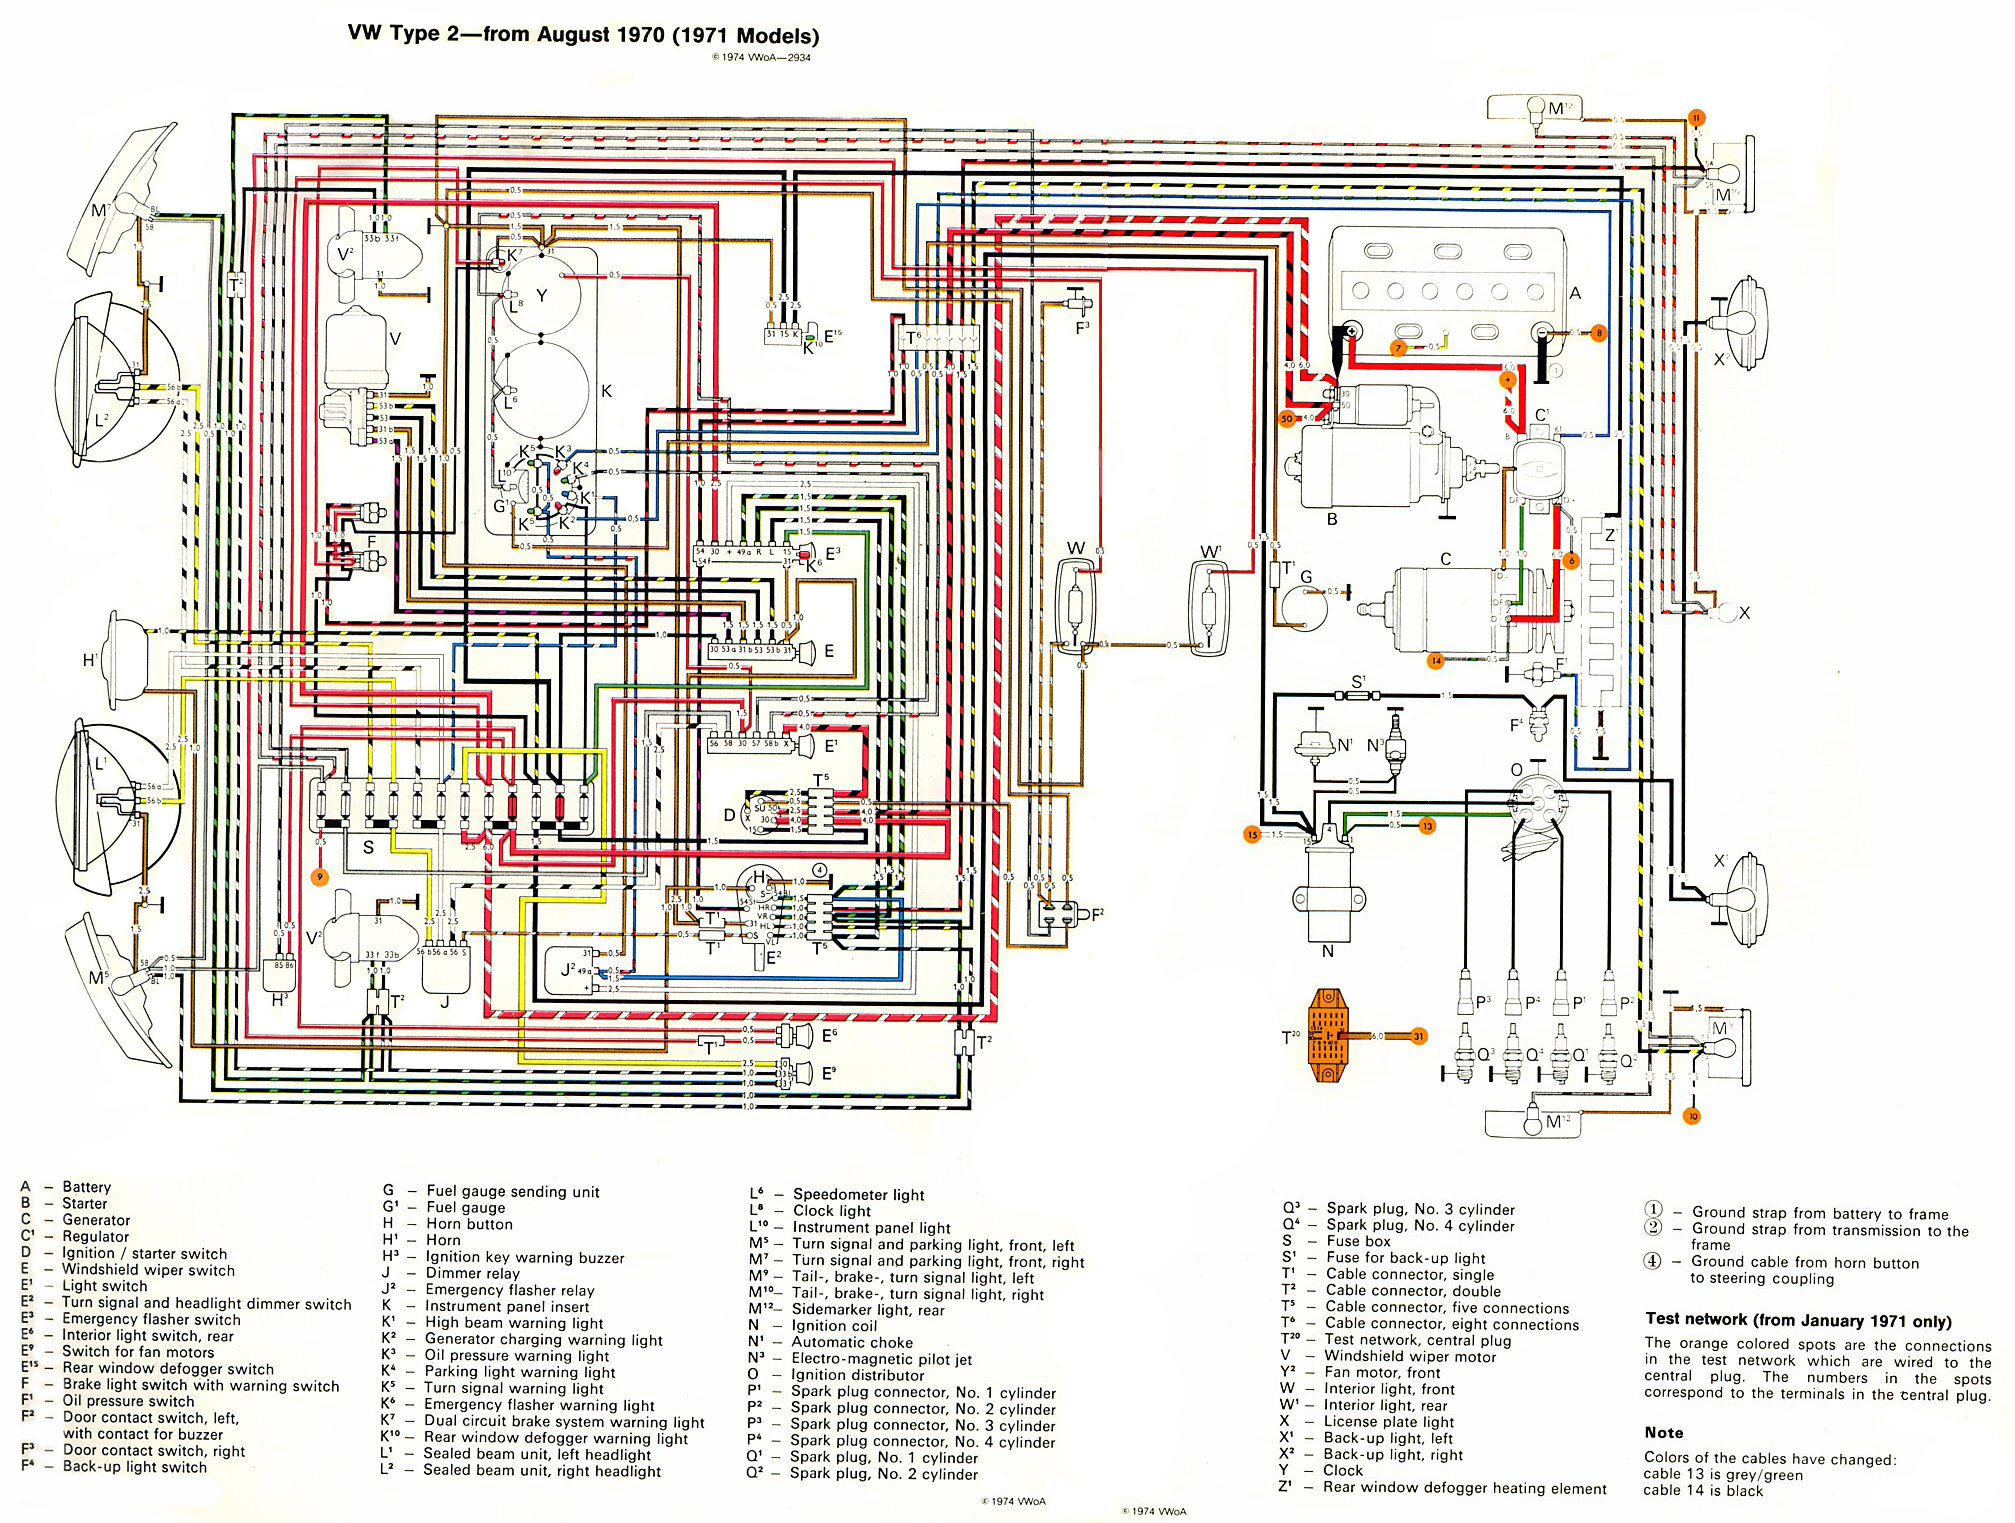 baybus_71_fixed wiring schematic diagram carrier package unit wiring diagram vw wiring diagram symbols at panicattacktreatment.co